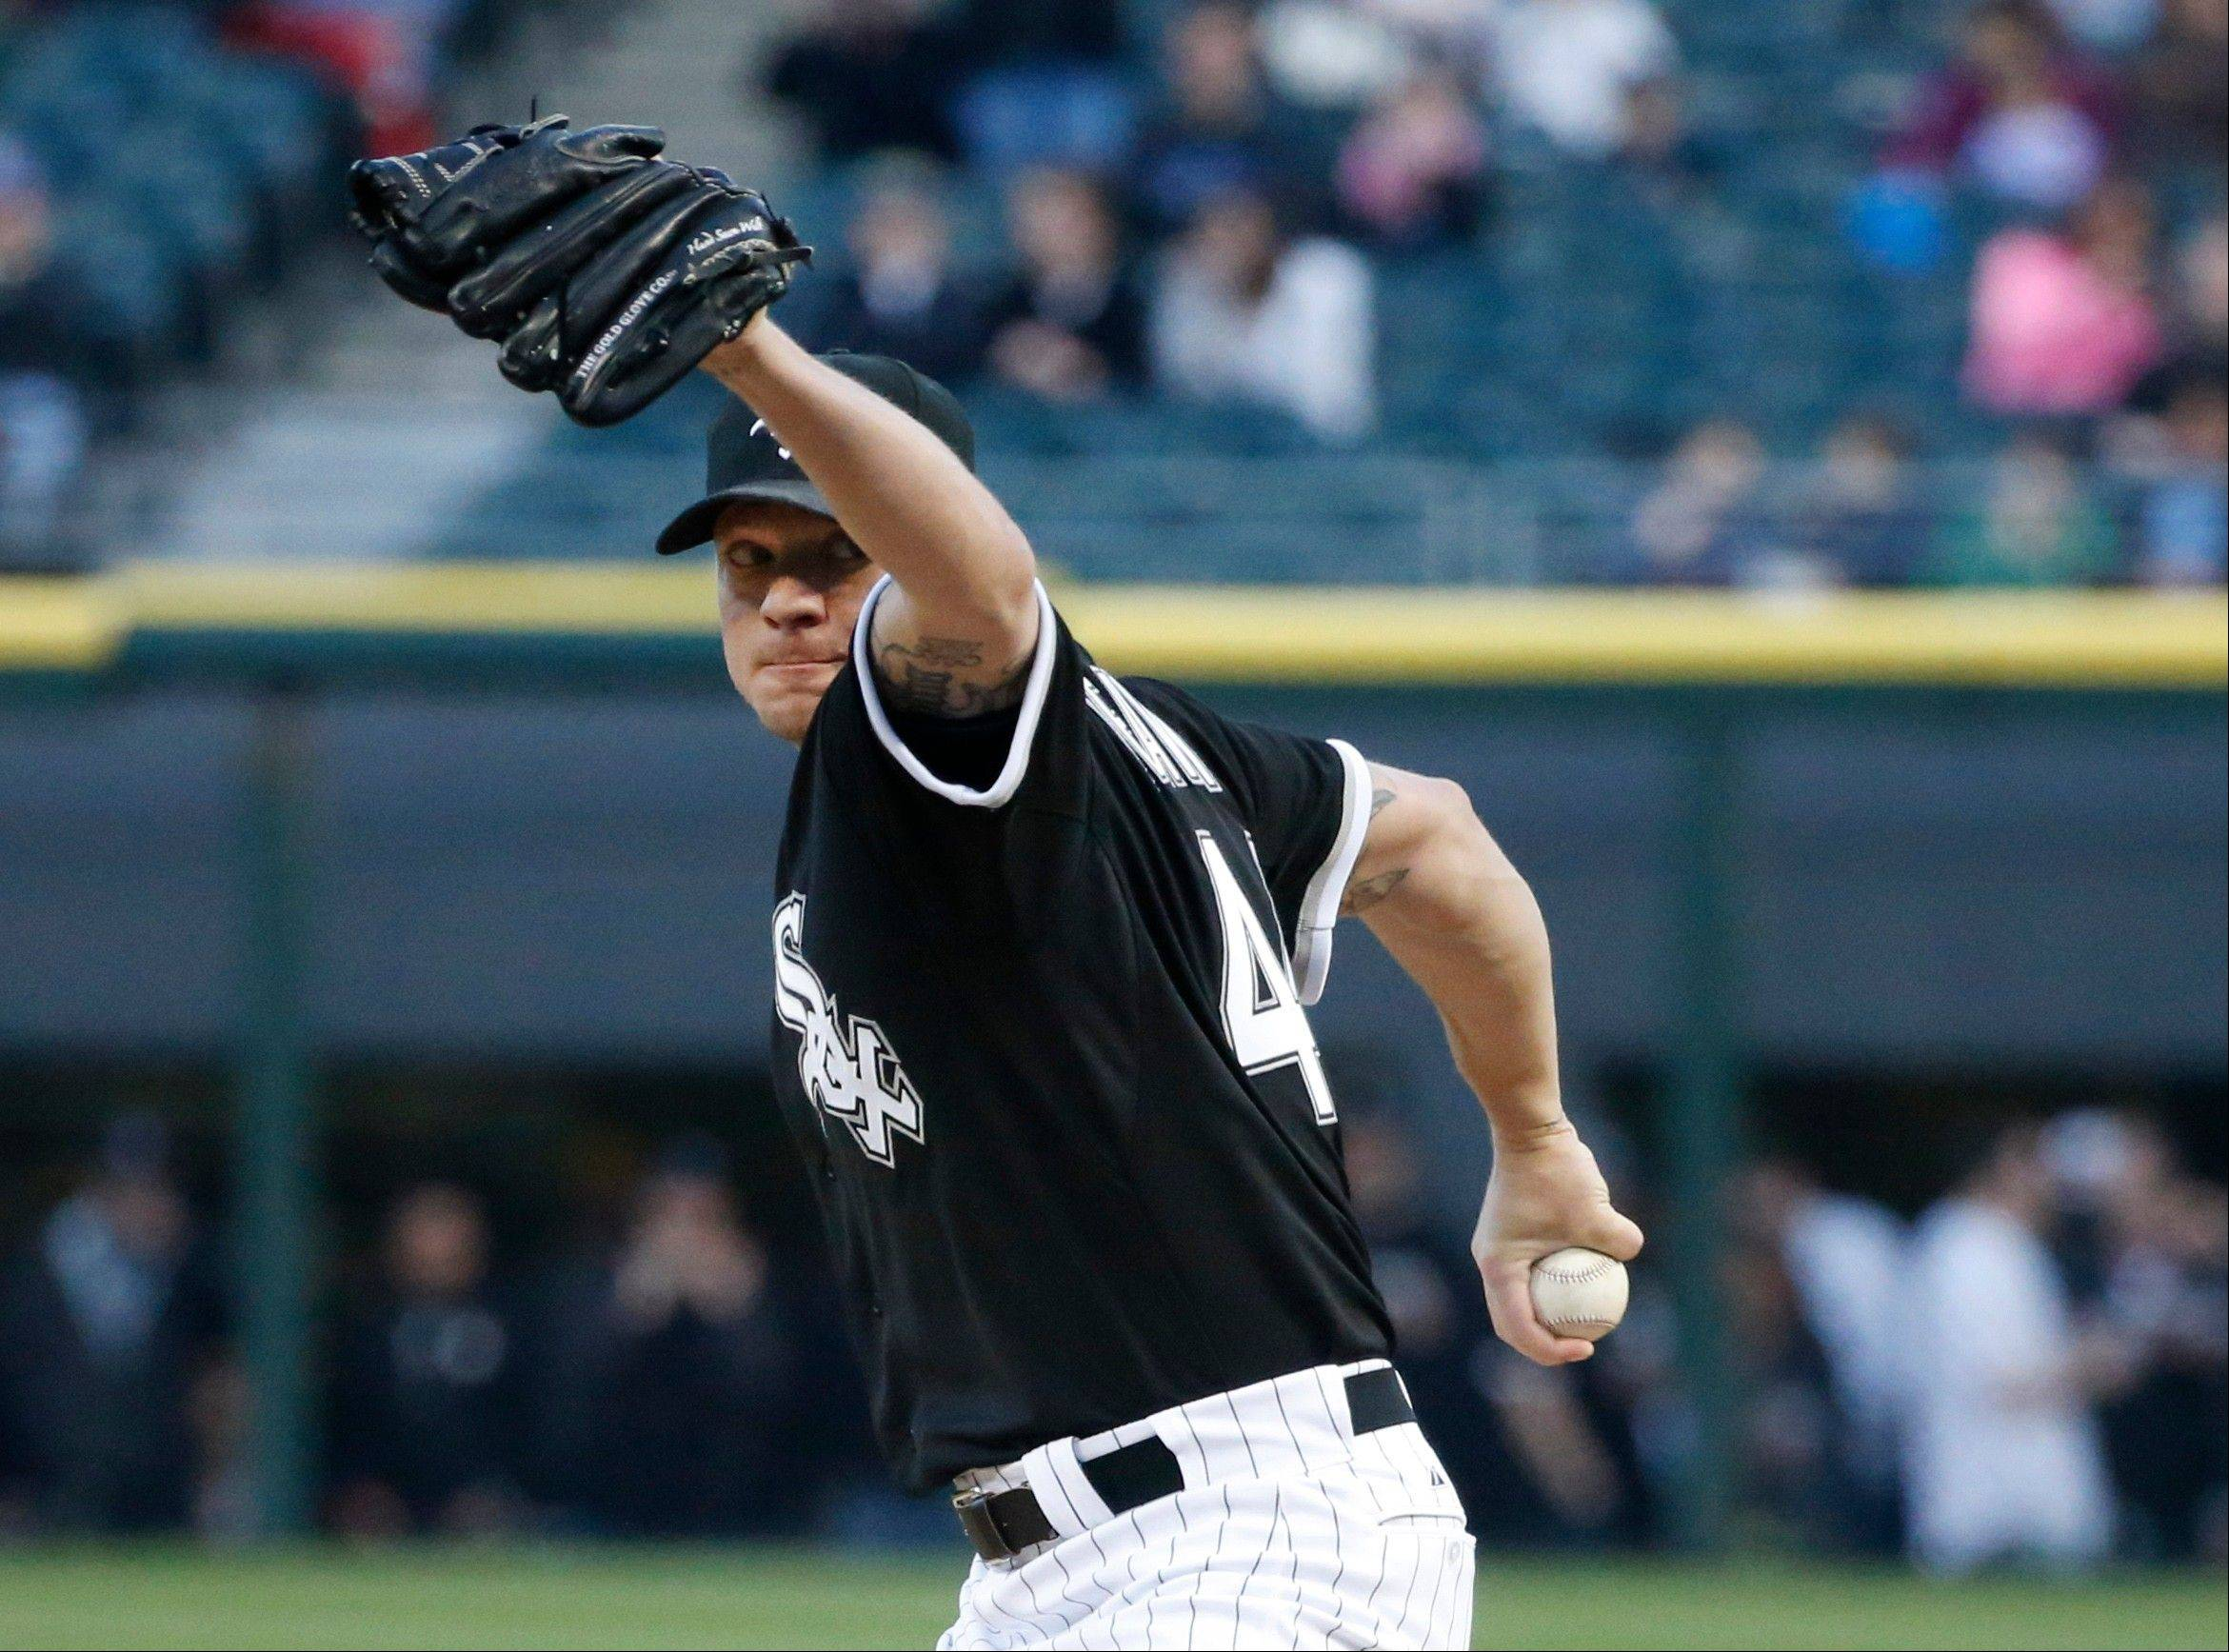 All-around team effort for Sox in win